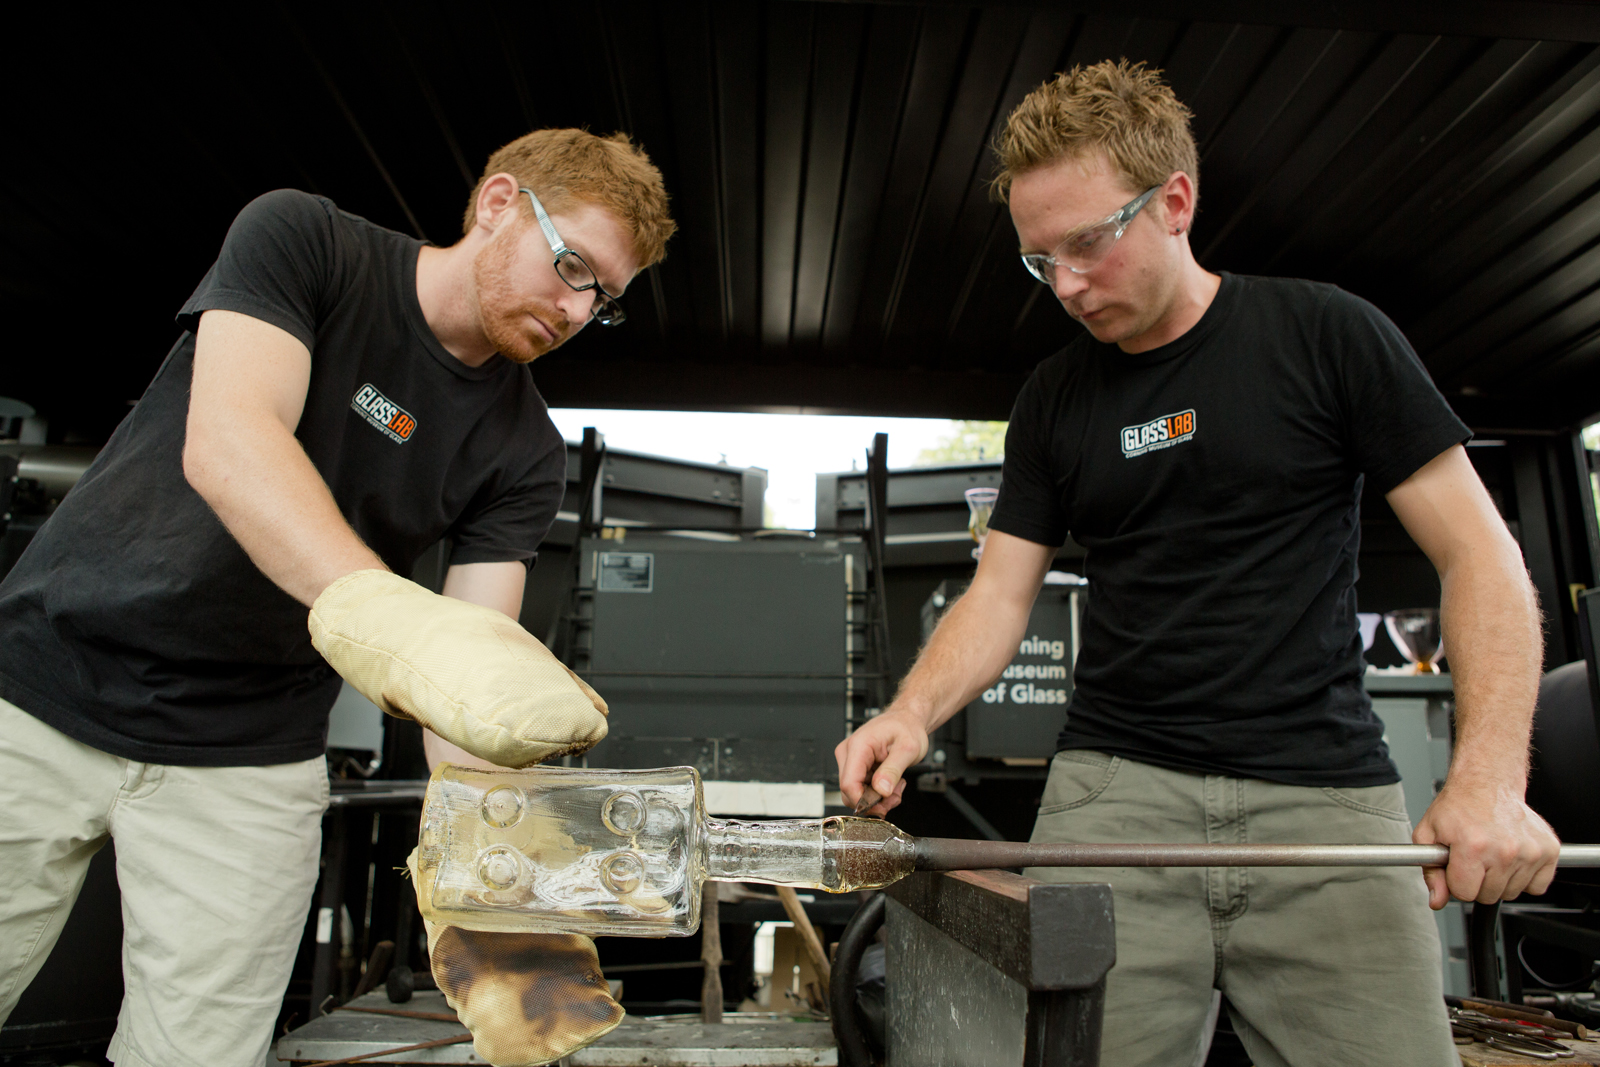 Glassmakers Dane Jack and Chris Rochelle work with Tim Dubitsky at GlassLab in Corning, August 2012